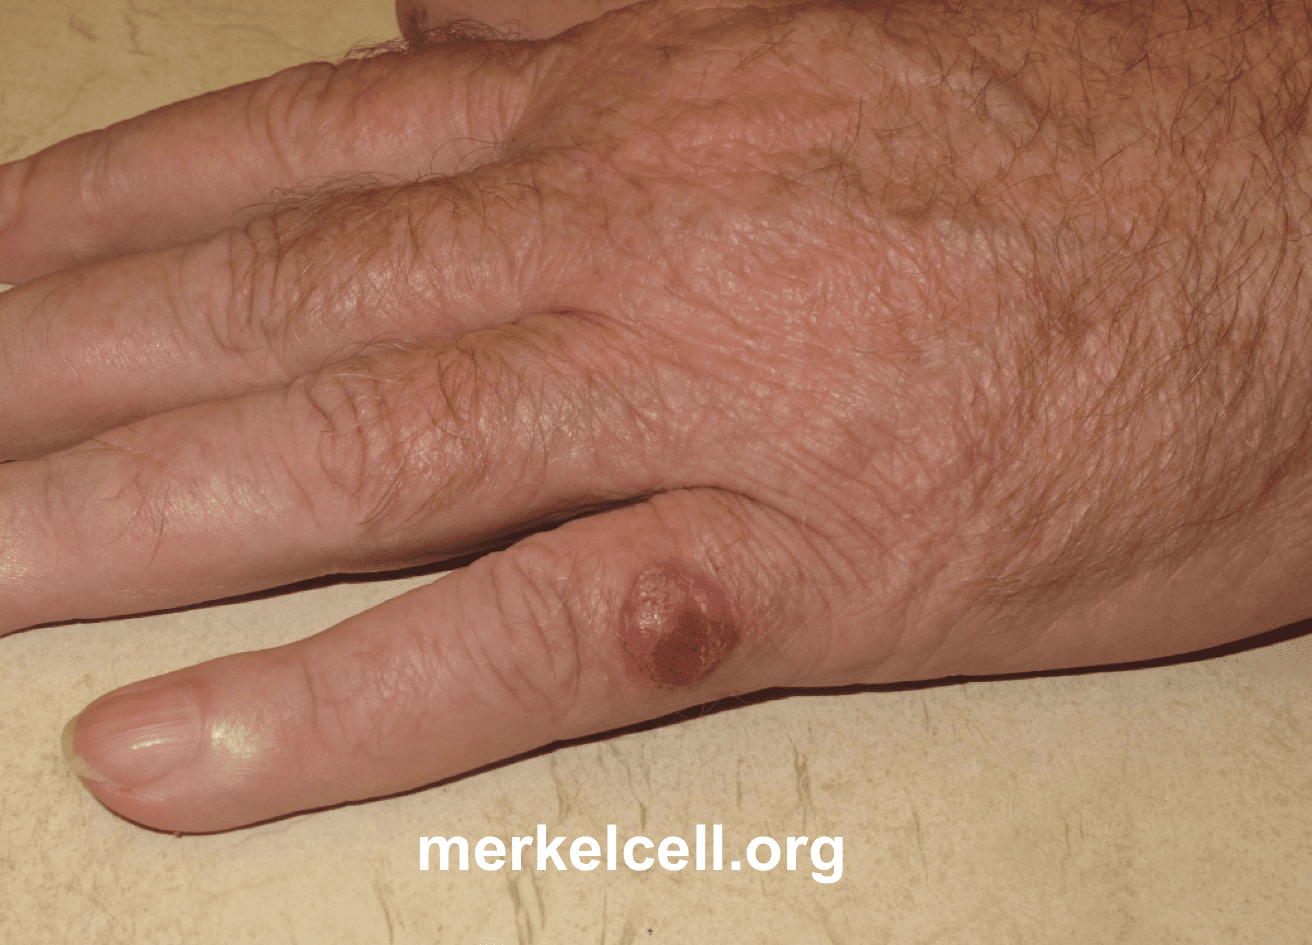 Clinical Photos of Merkel Cell Carcinoma | Merkel Cell Carcinoma